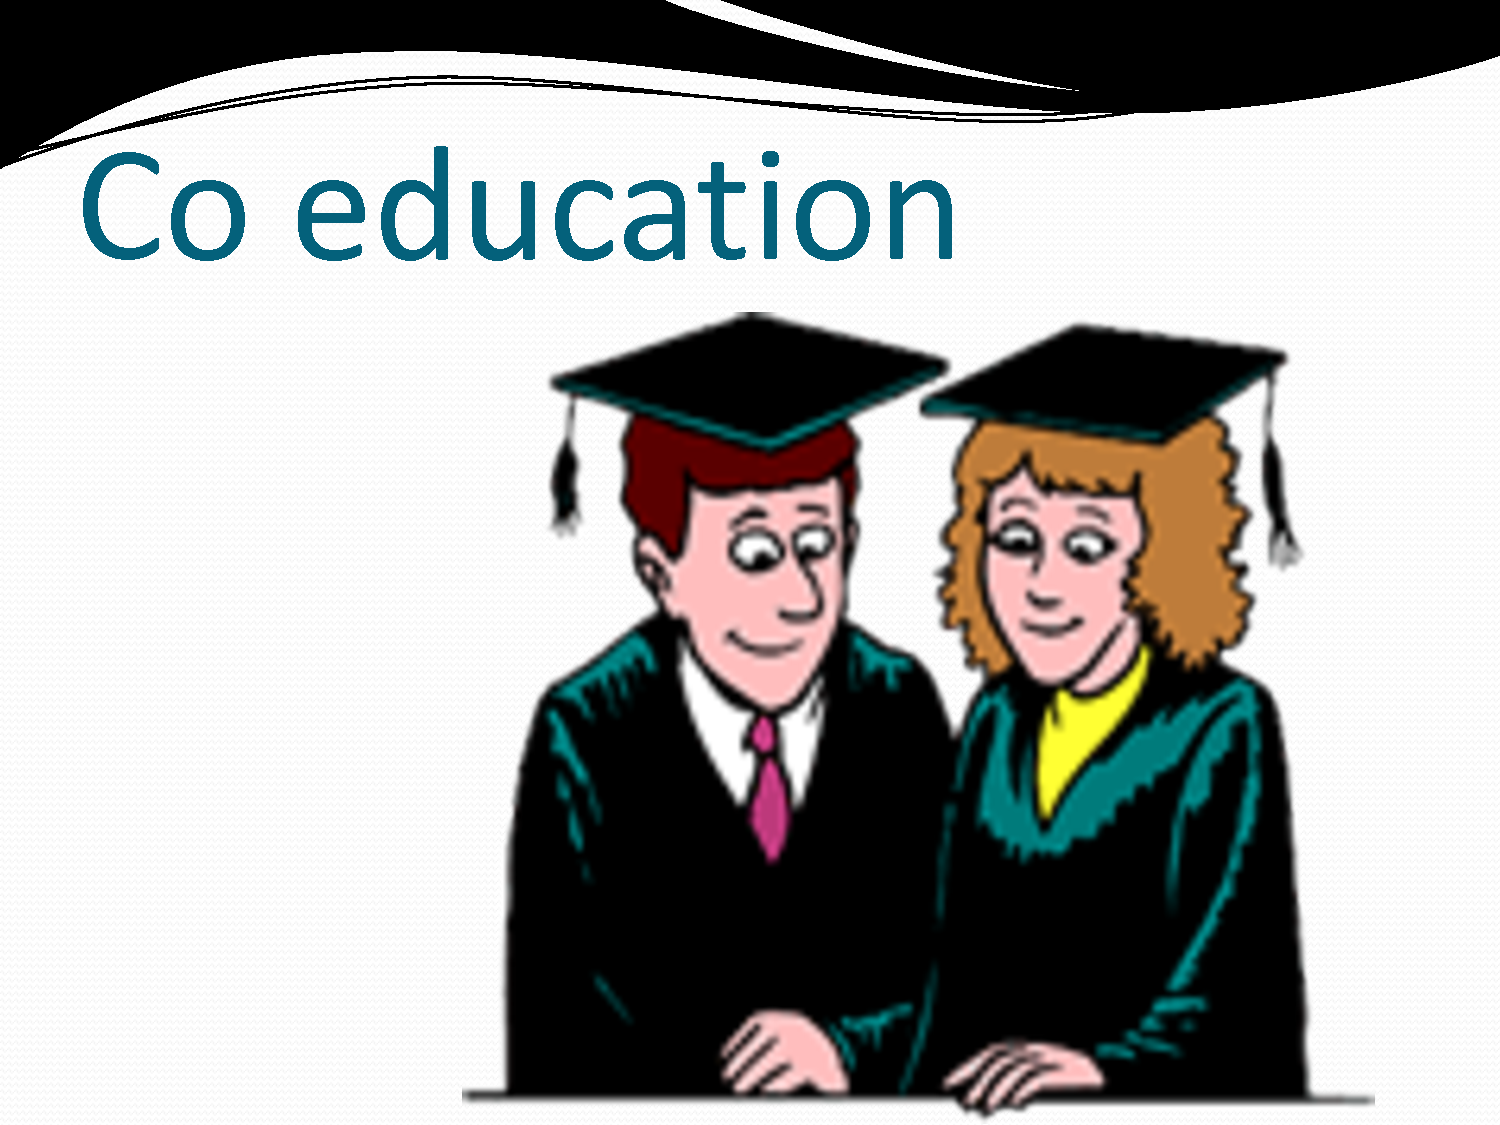 essays on advantages of co-education Co-education ordinarily means the studying of boys and girls together in the same 956 words essay on co-education many are the advantages of co-education.